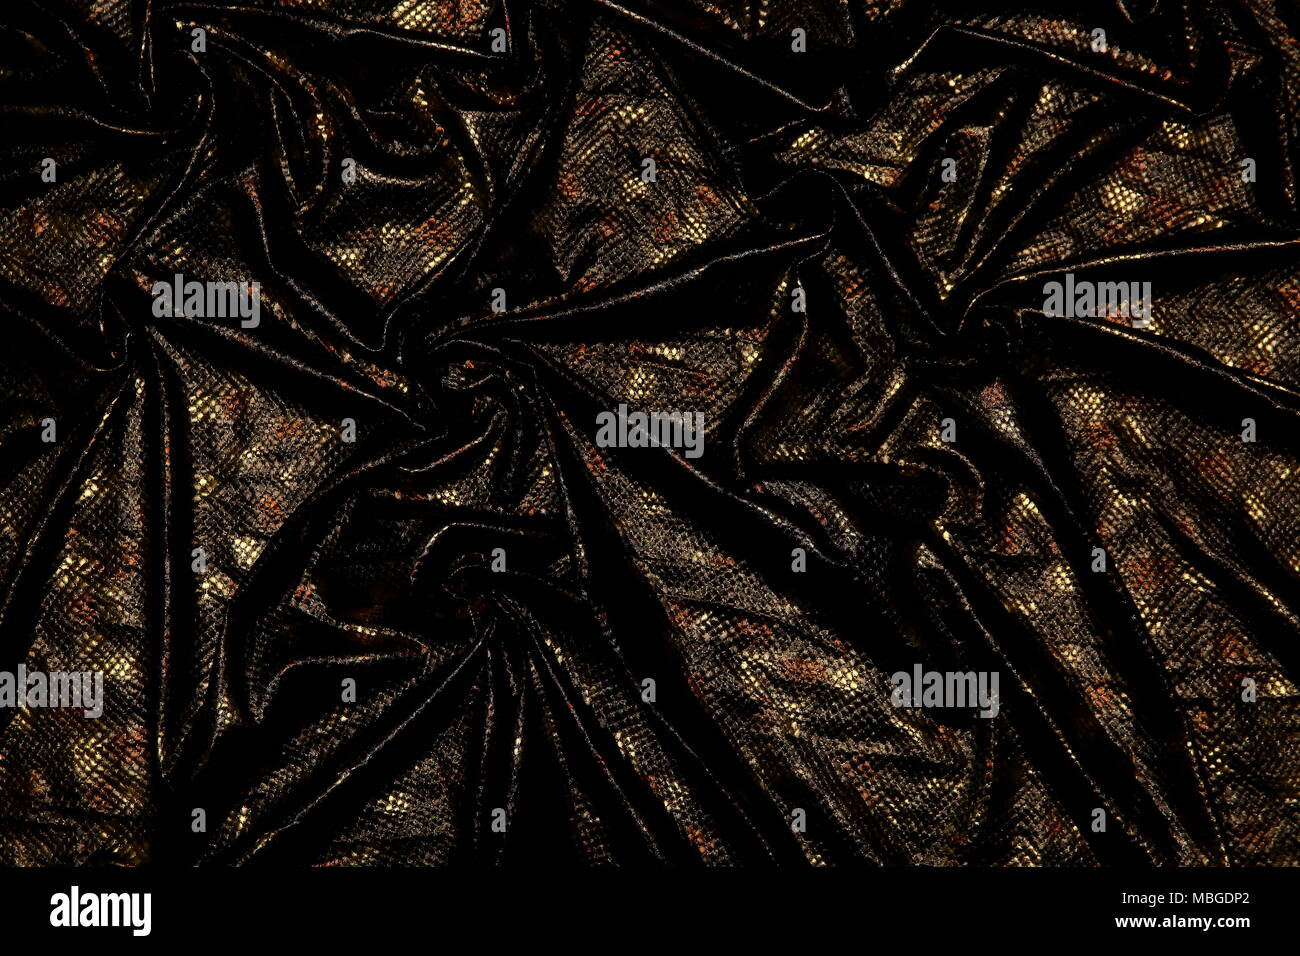 Organtyna is a shiny material which is a material suitable for outfits that are supposed to emphasize status and success. - Stock Image